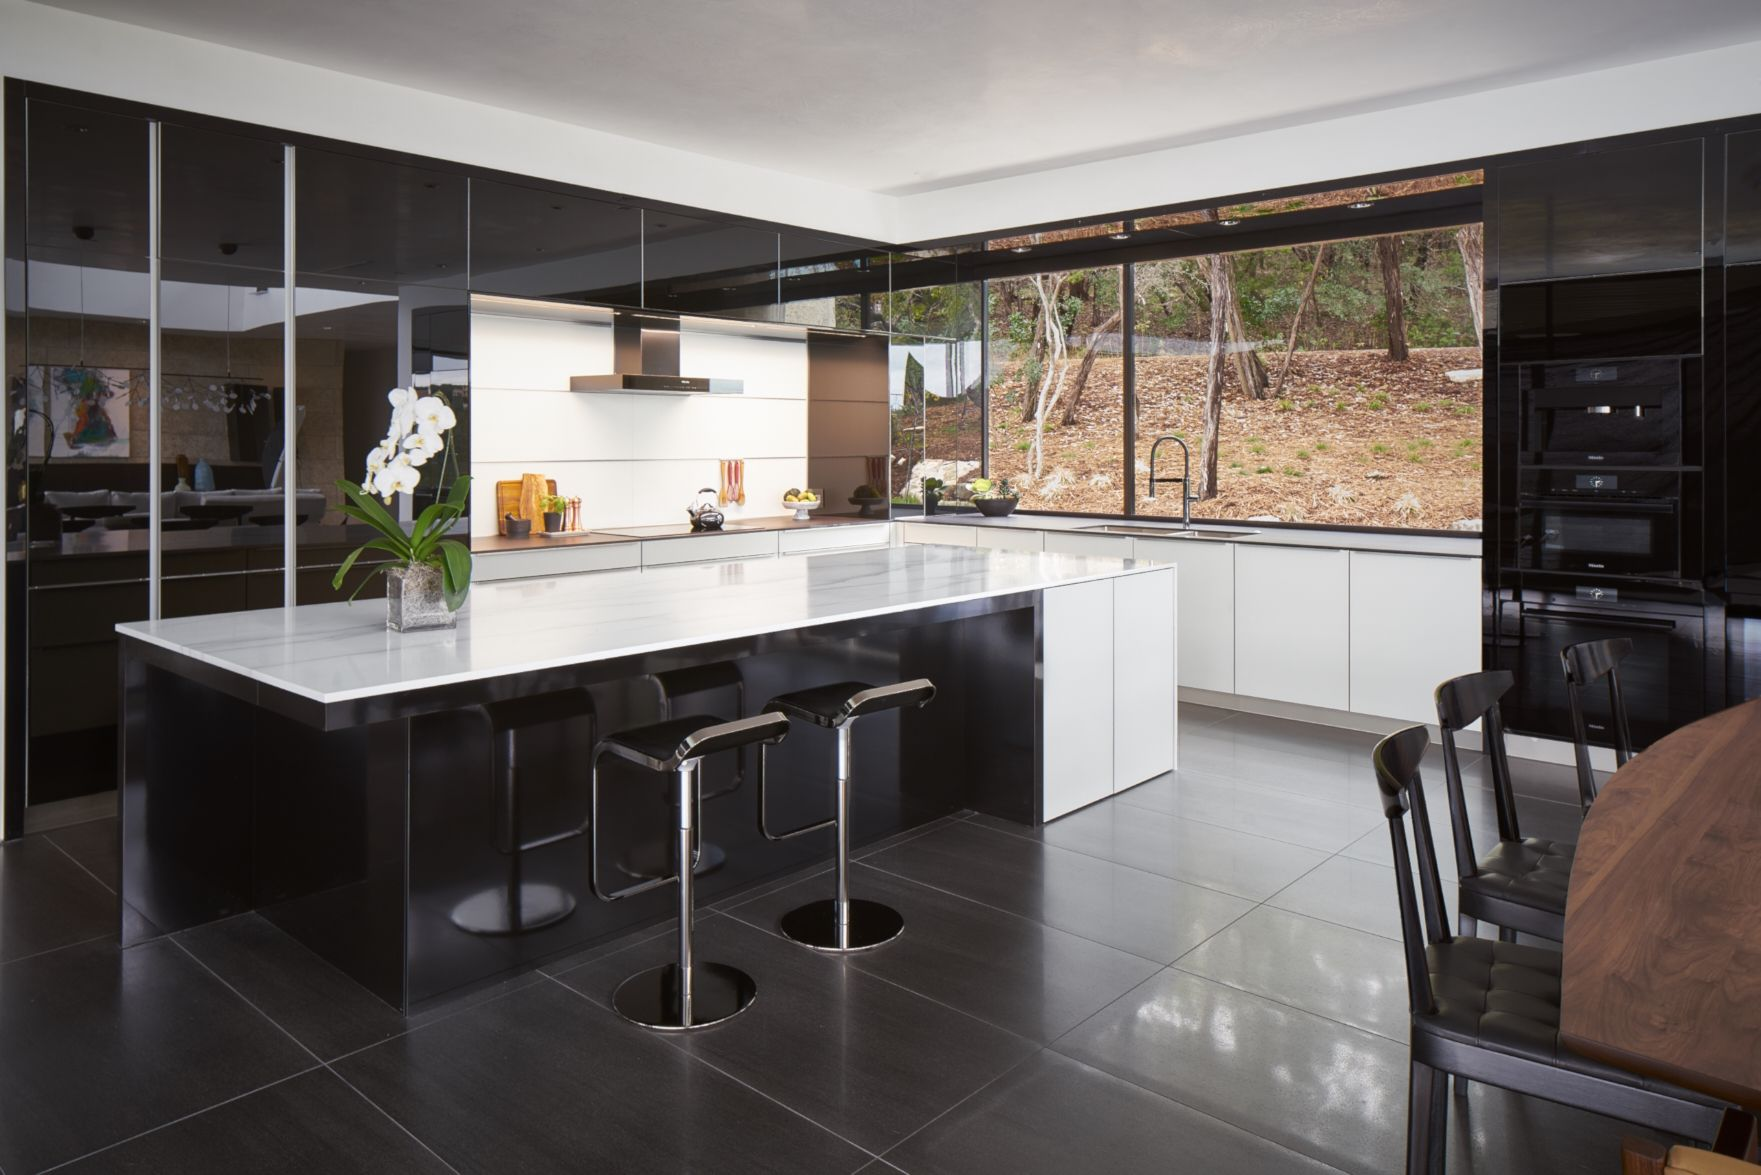 Gloss Ios Black Glass And Matte White Glass Kitchen Cabinetry Vitrea Frosty White Master Bath Cabinetry Ceres Matte Kitchen Design Kitchen Kitchen Cabinetry